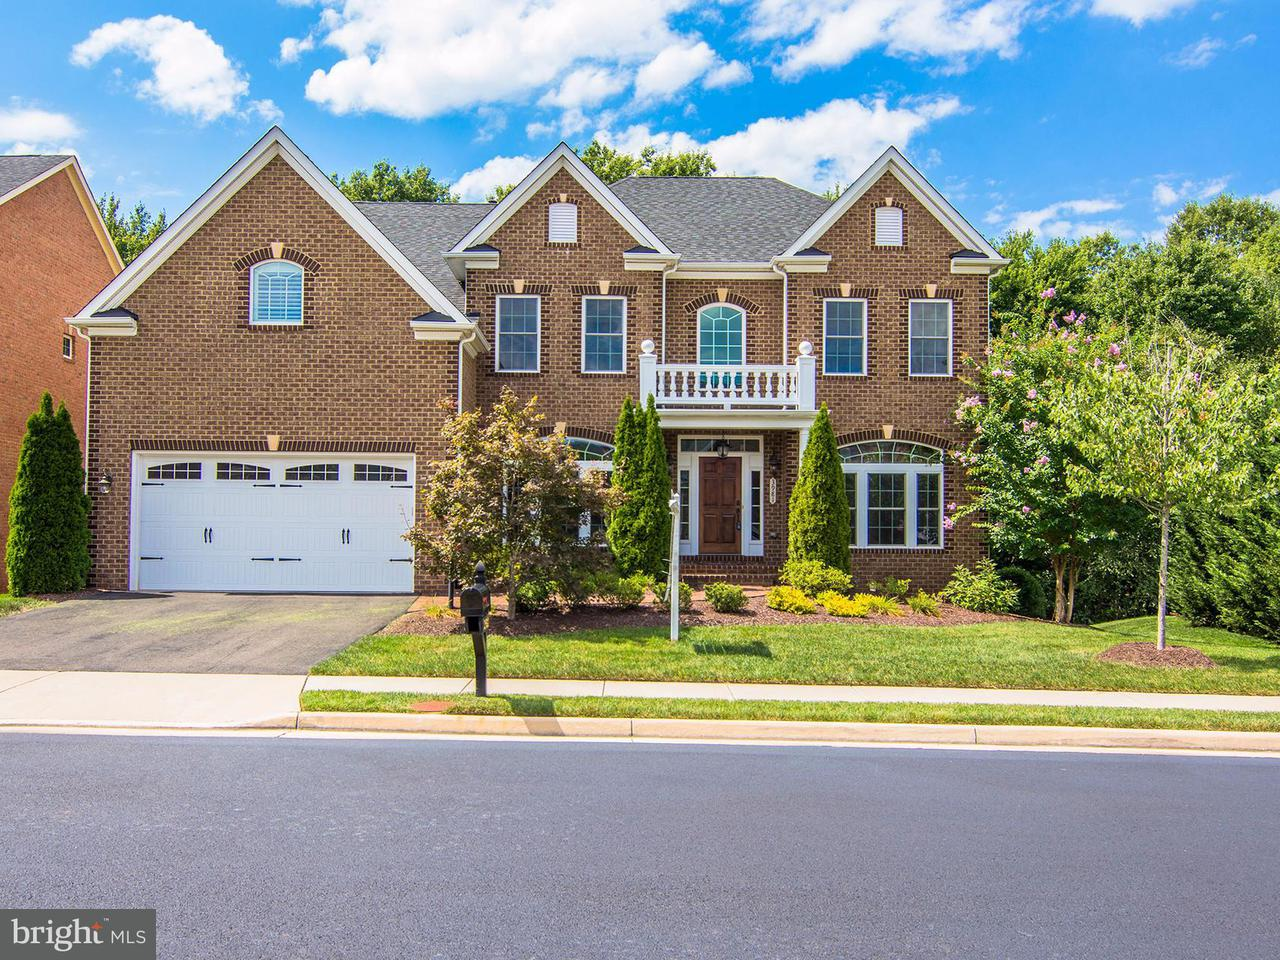 Single Family Home for Sale at 3981 WOODBERRY MEADOW Drive 3981 WOODBERRY MEADOW Drive Fairfax, Virginia 22033 United States